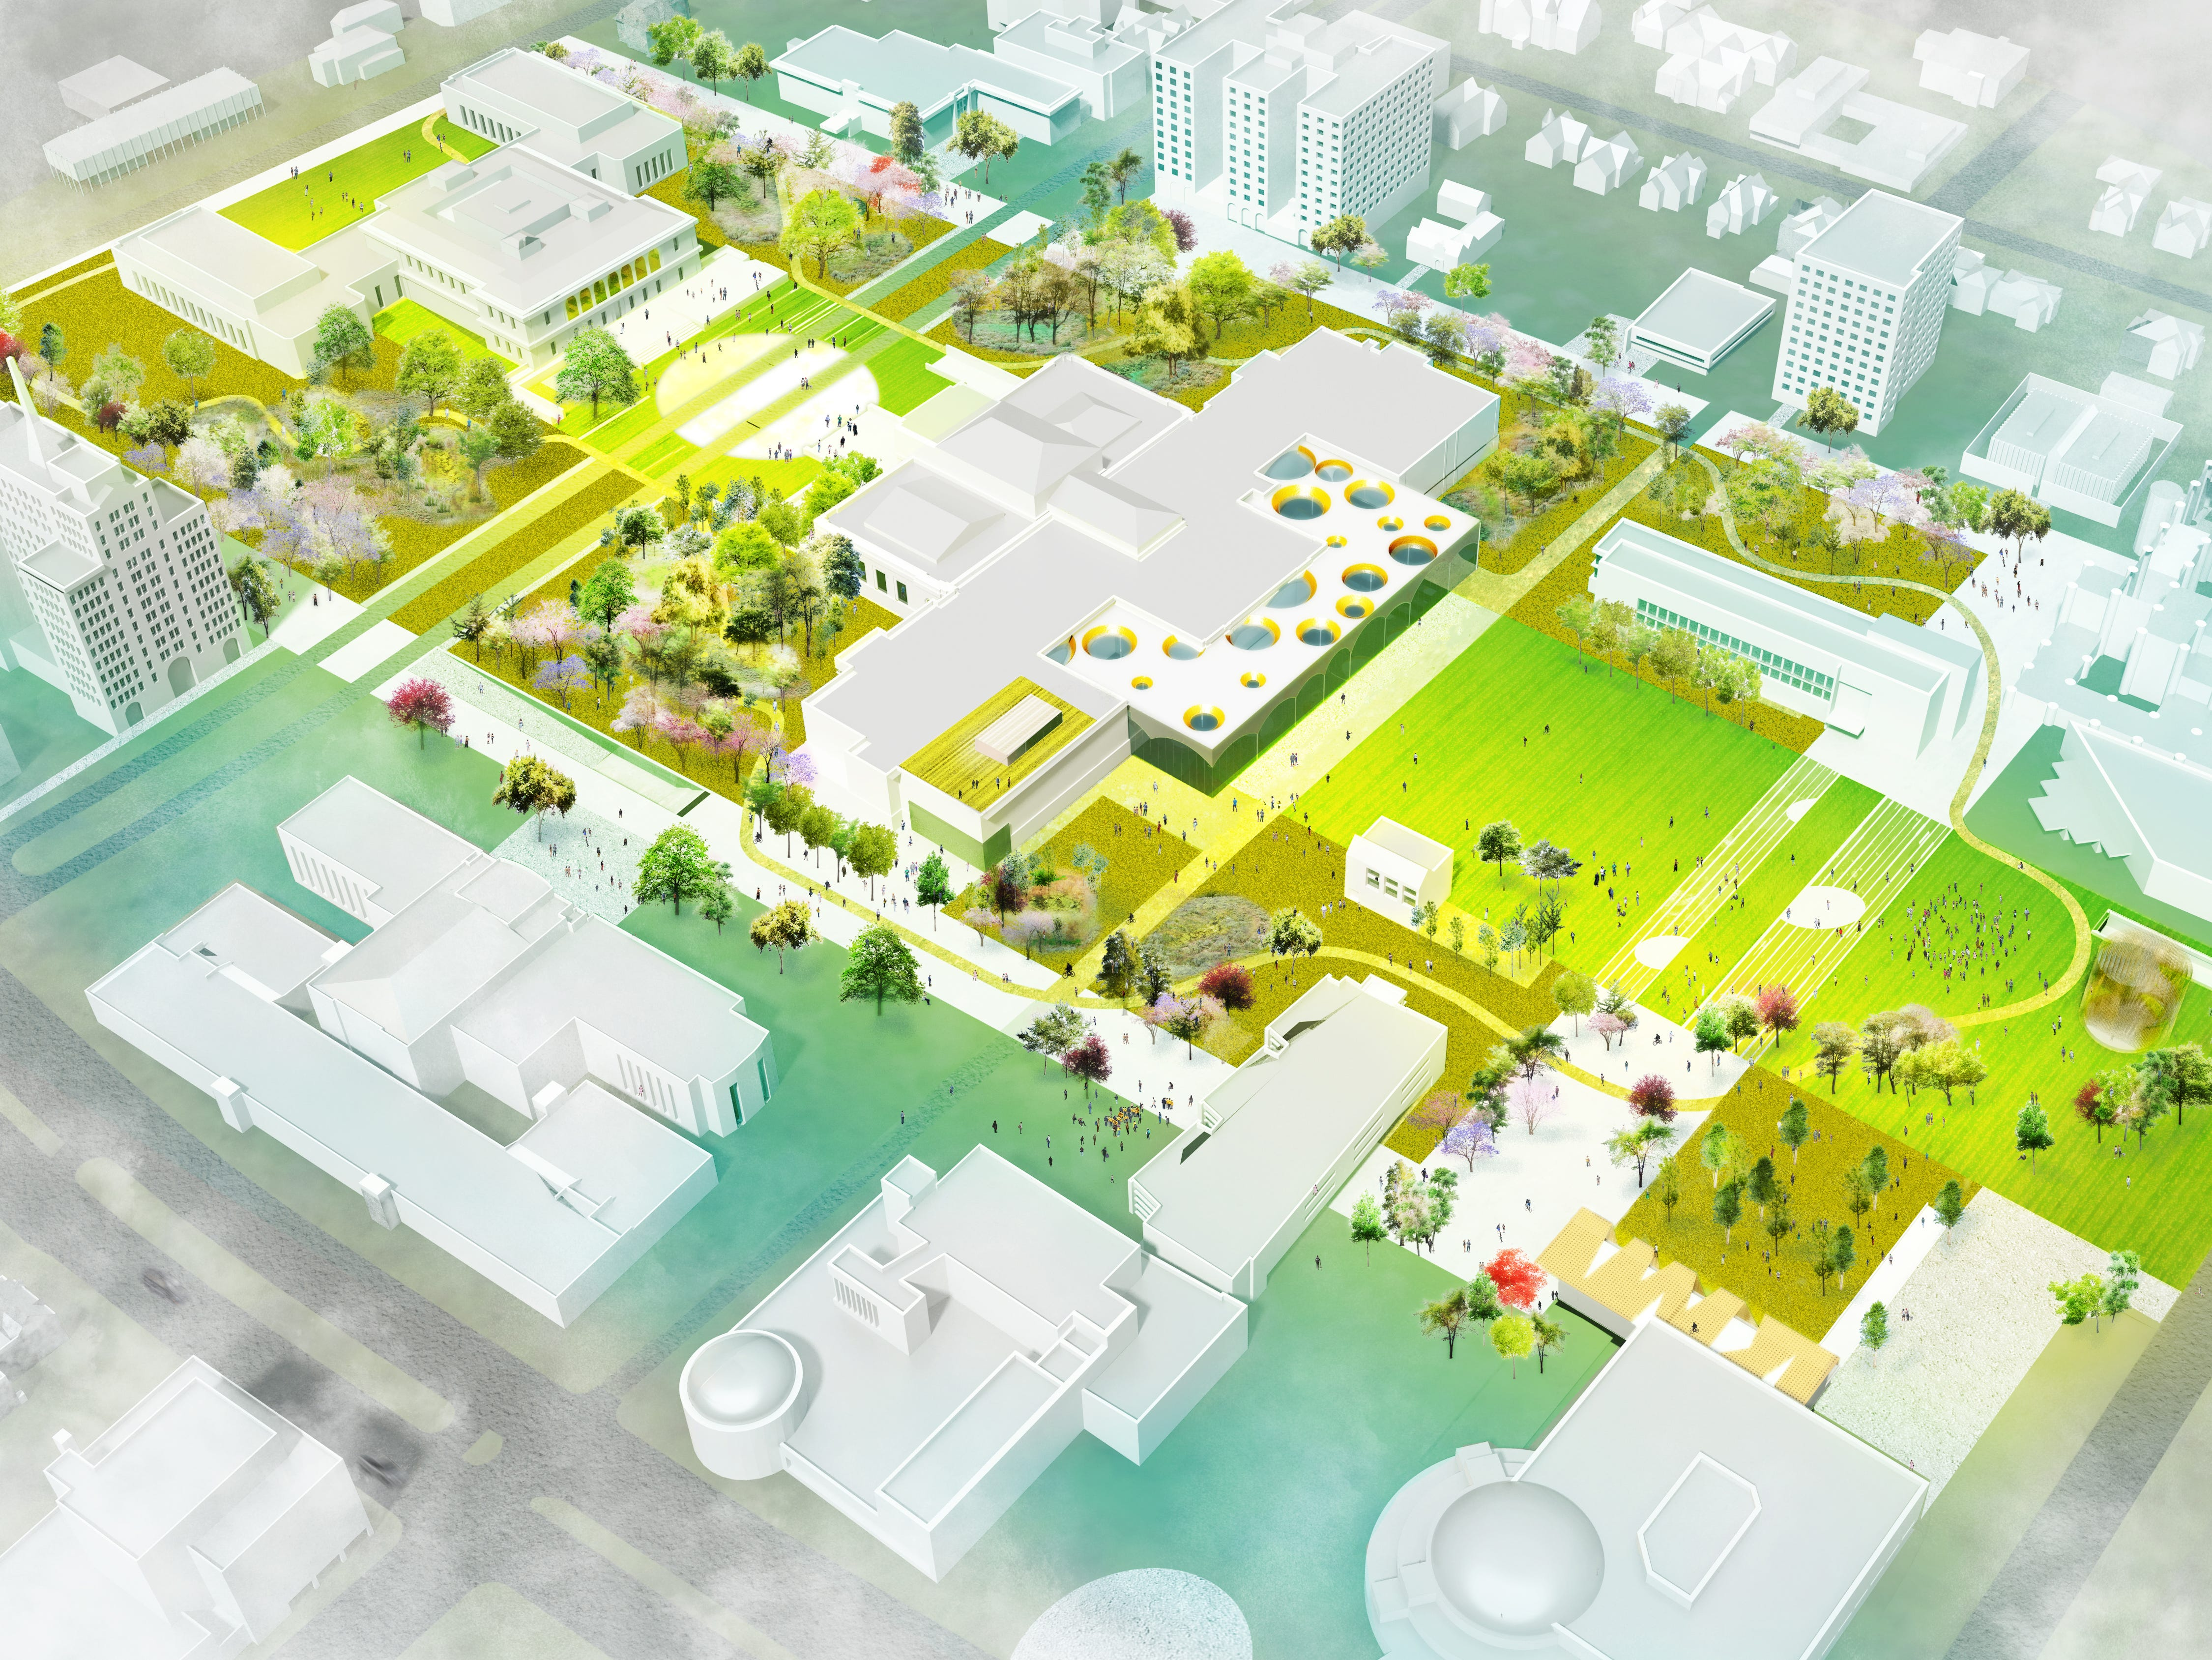 These are the changes proposed by the finalist team Agence Ter in the DIA Plaza/Midtown Cultural Connections design competition.